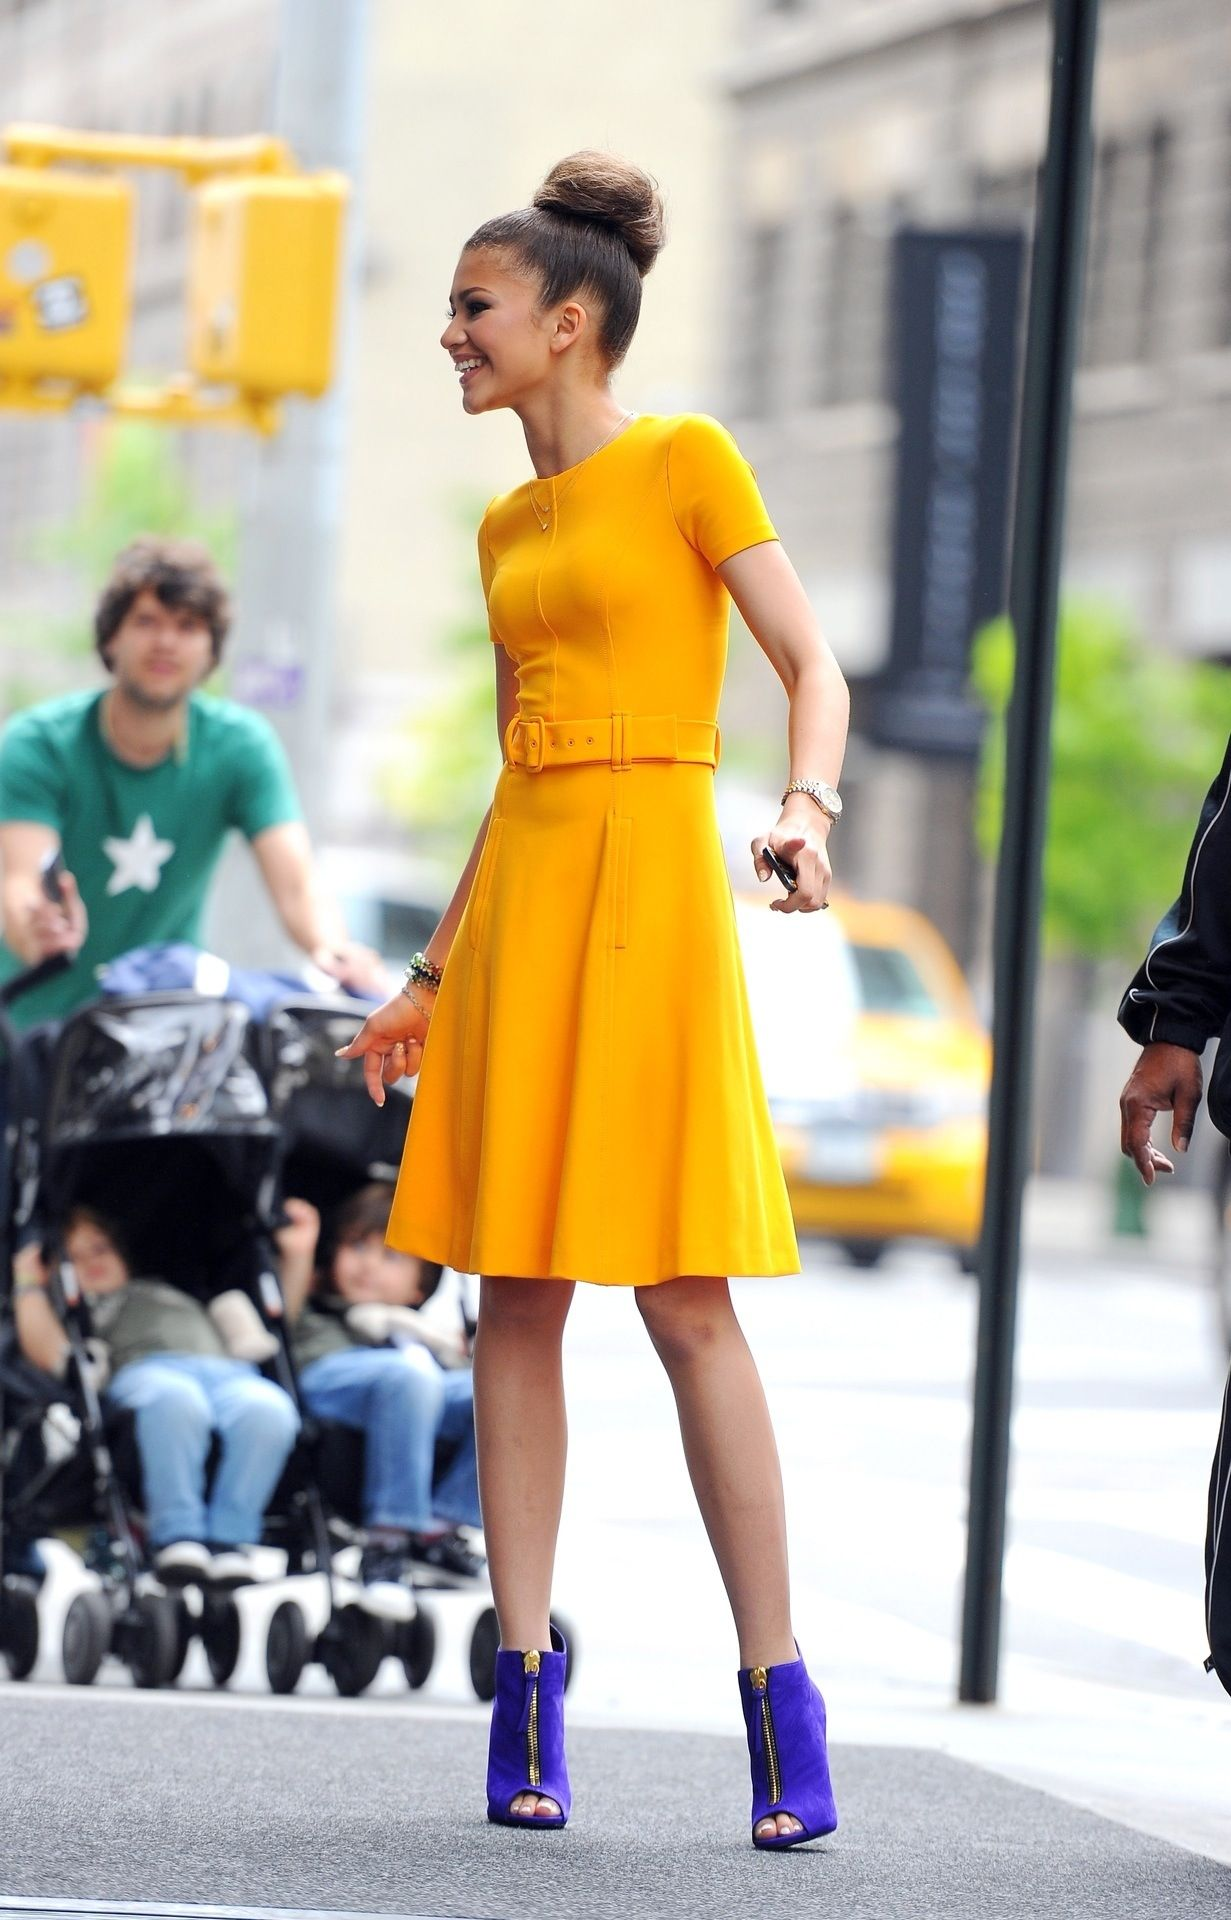 776d3debd28a6 Zendaya wearing a nice yellow dress and some super cute heels Vintage, Style,  Fashion